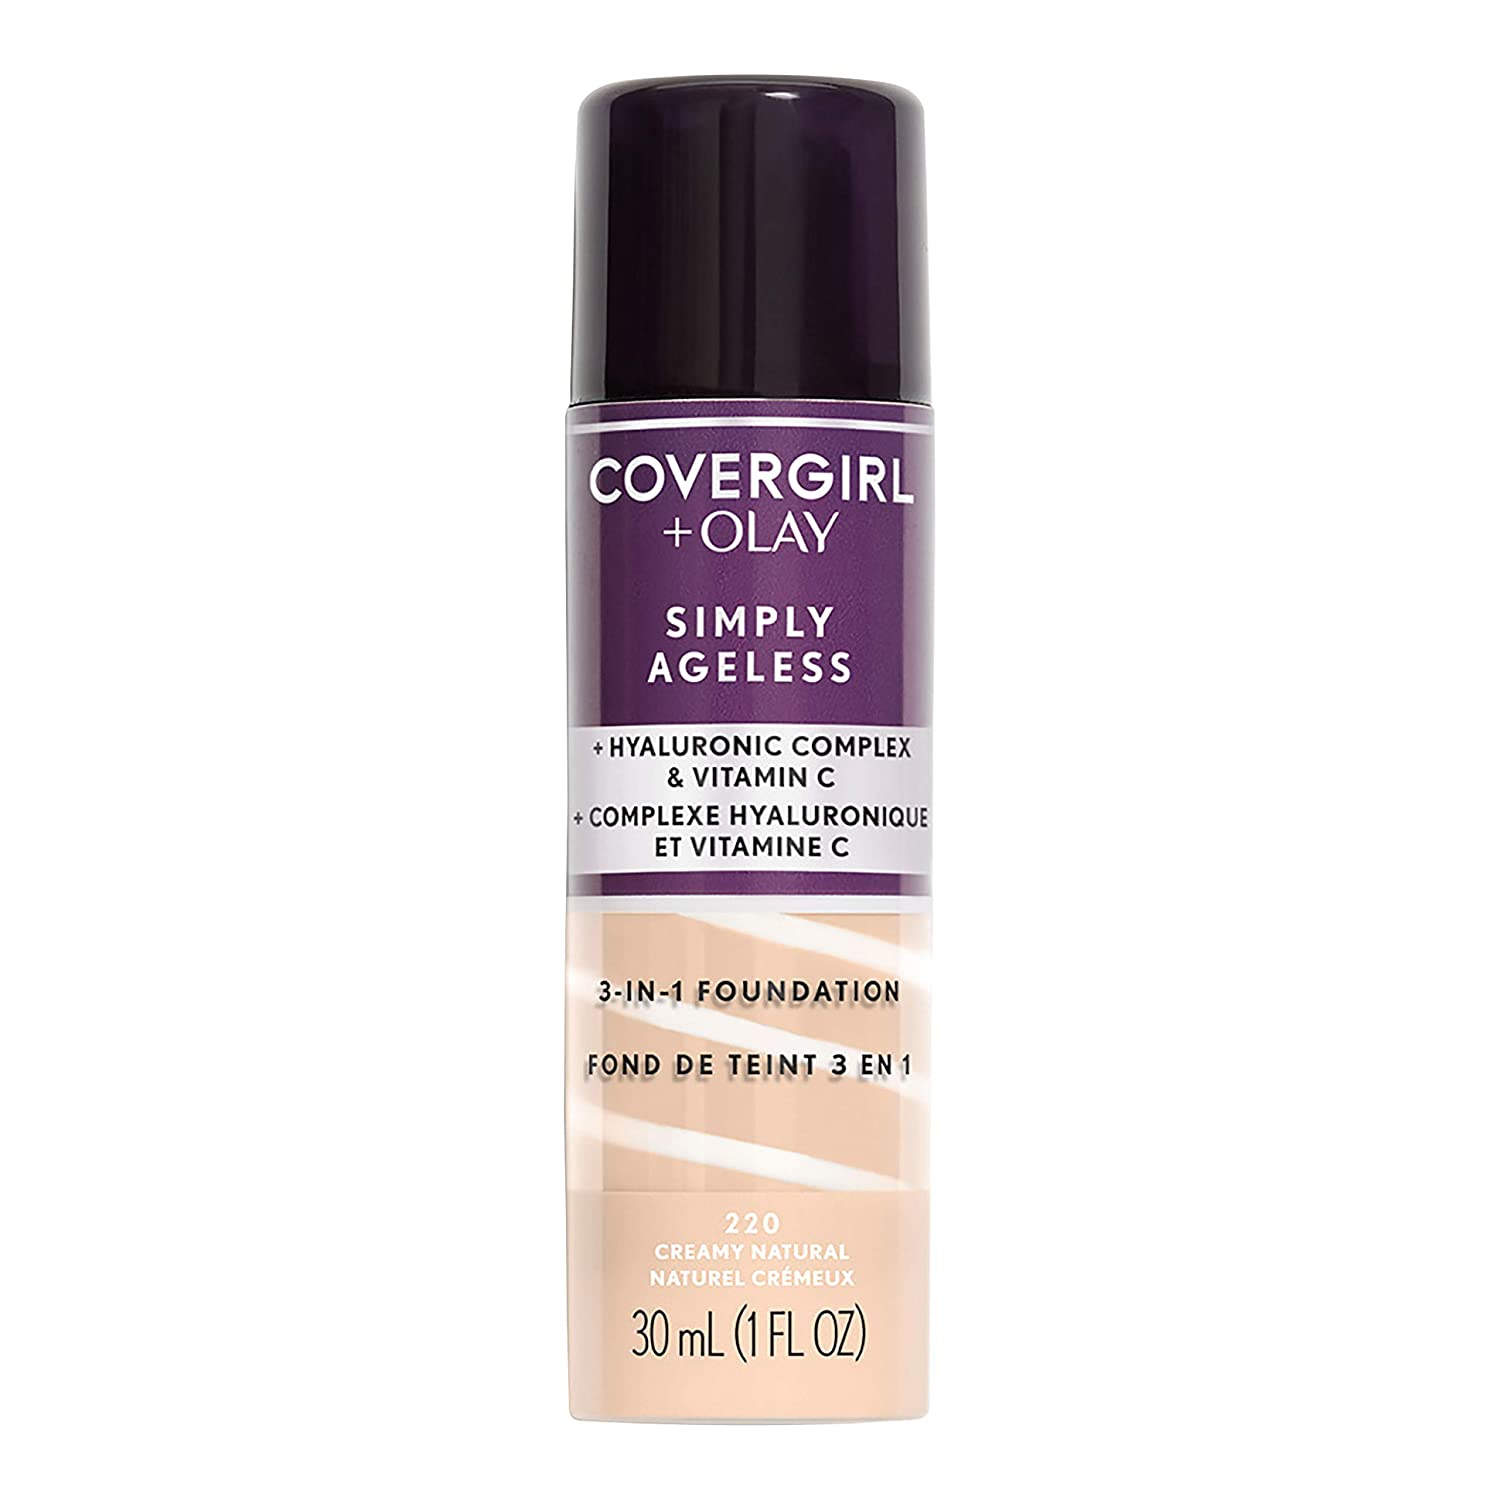 Covergirl & Olay Simply Ageless 3-in-1 Liquid Foundation, Creamy Natural : Beauty